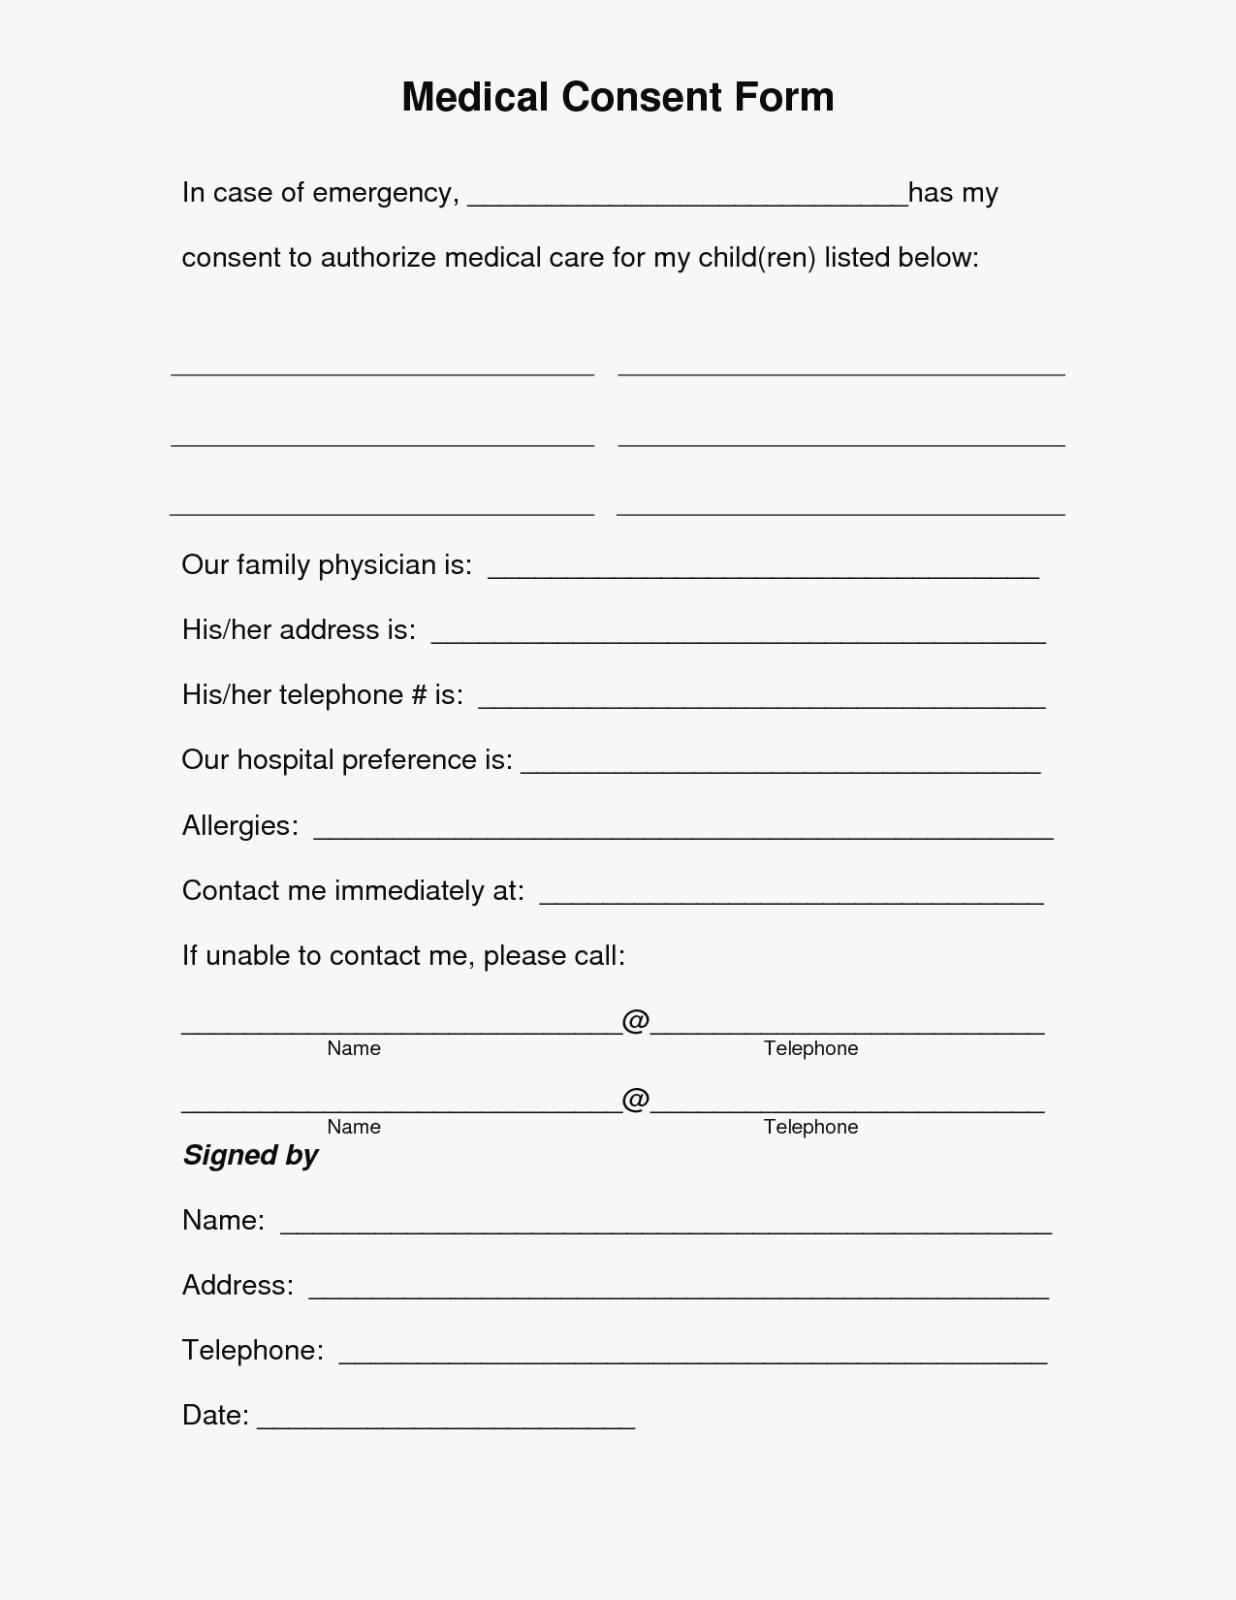 Humana.com/caregiver Consent form Awesome Coventry Advantra Silver